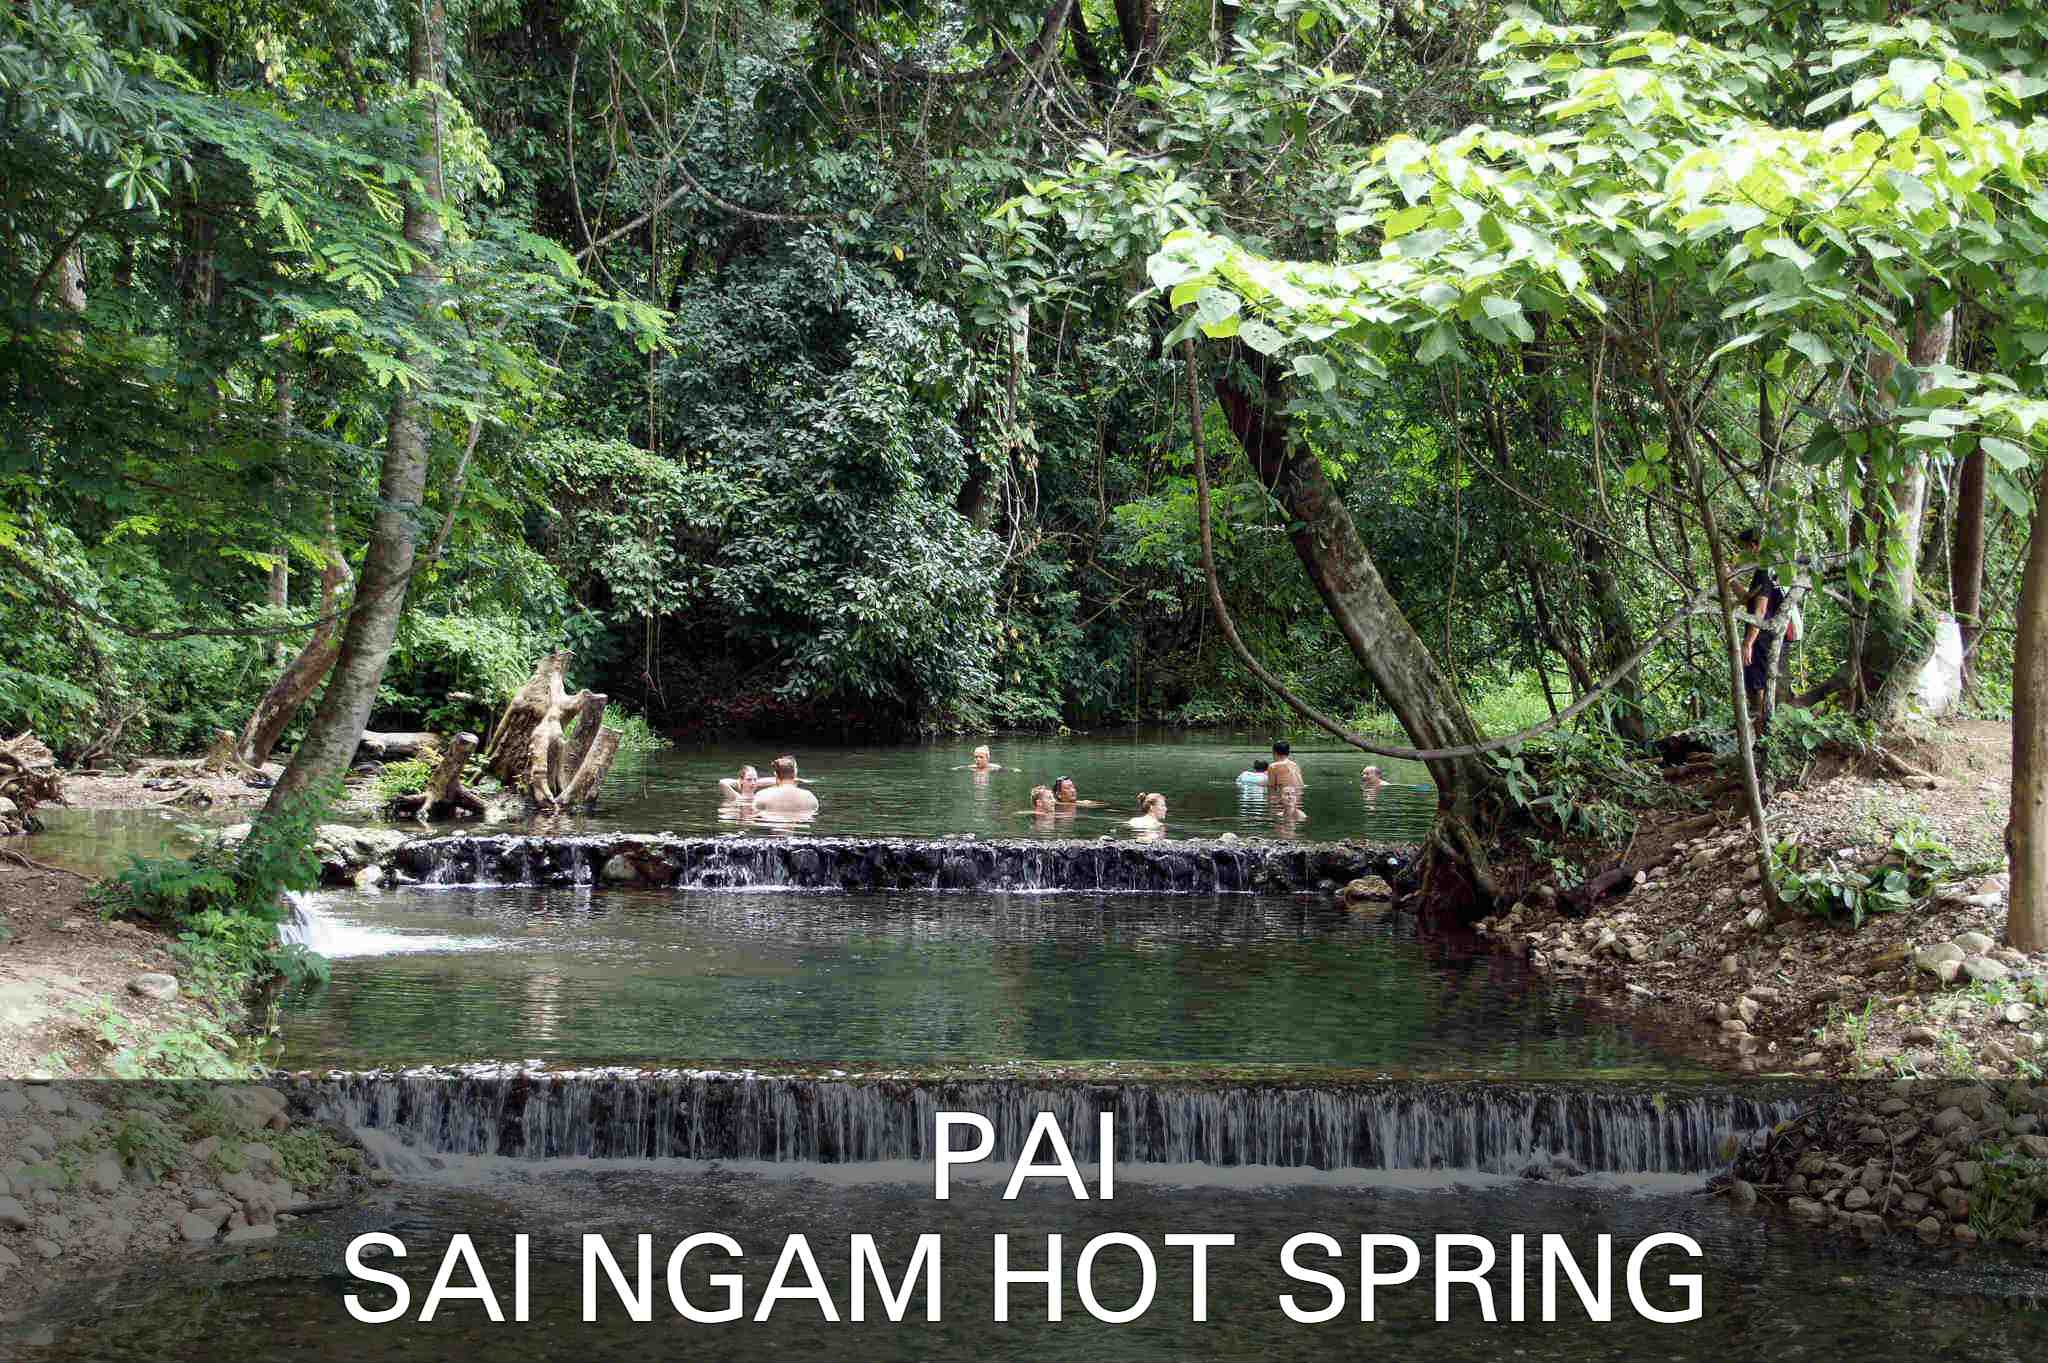 read about Sai Ngam Hot Spring in Pai